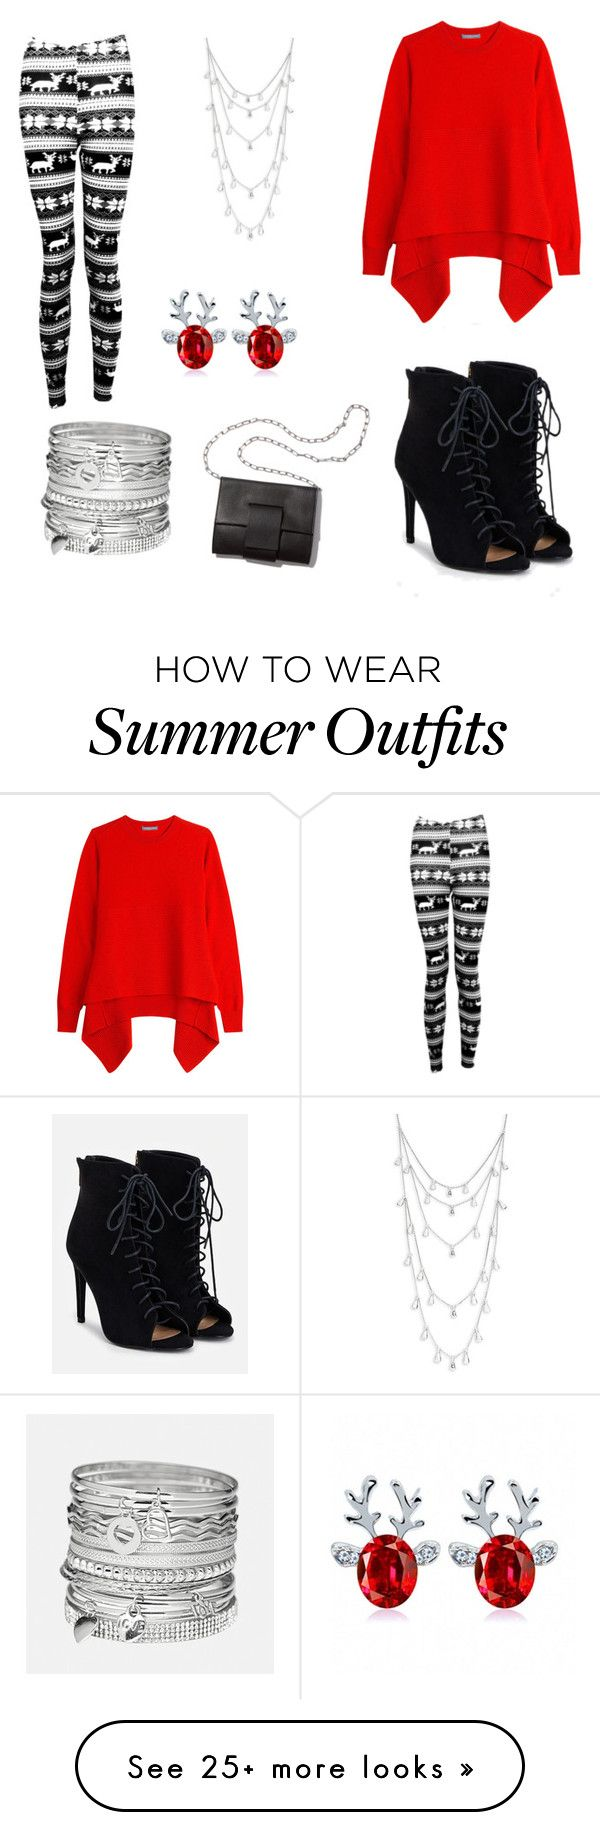 8330dfc44fb Summer Outfits